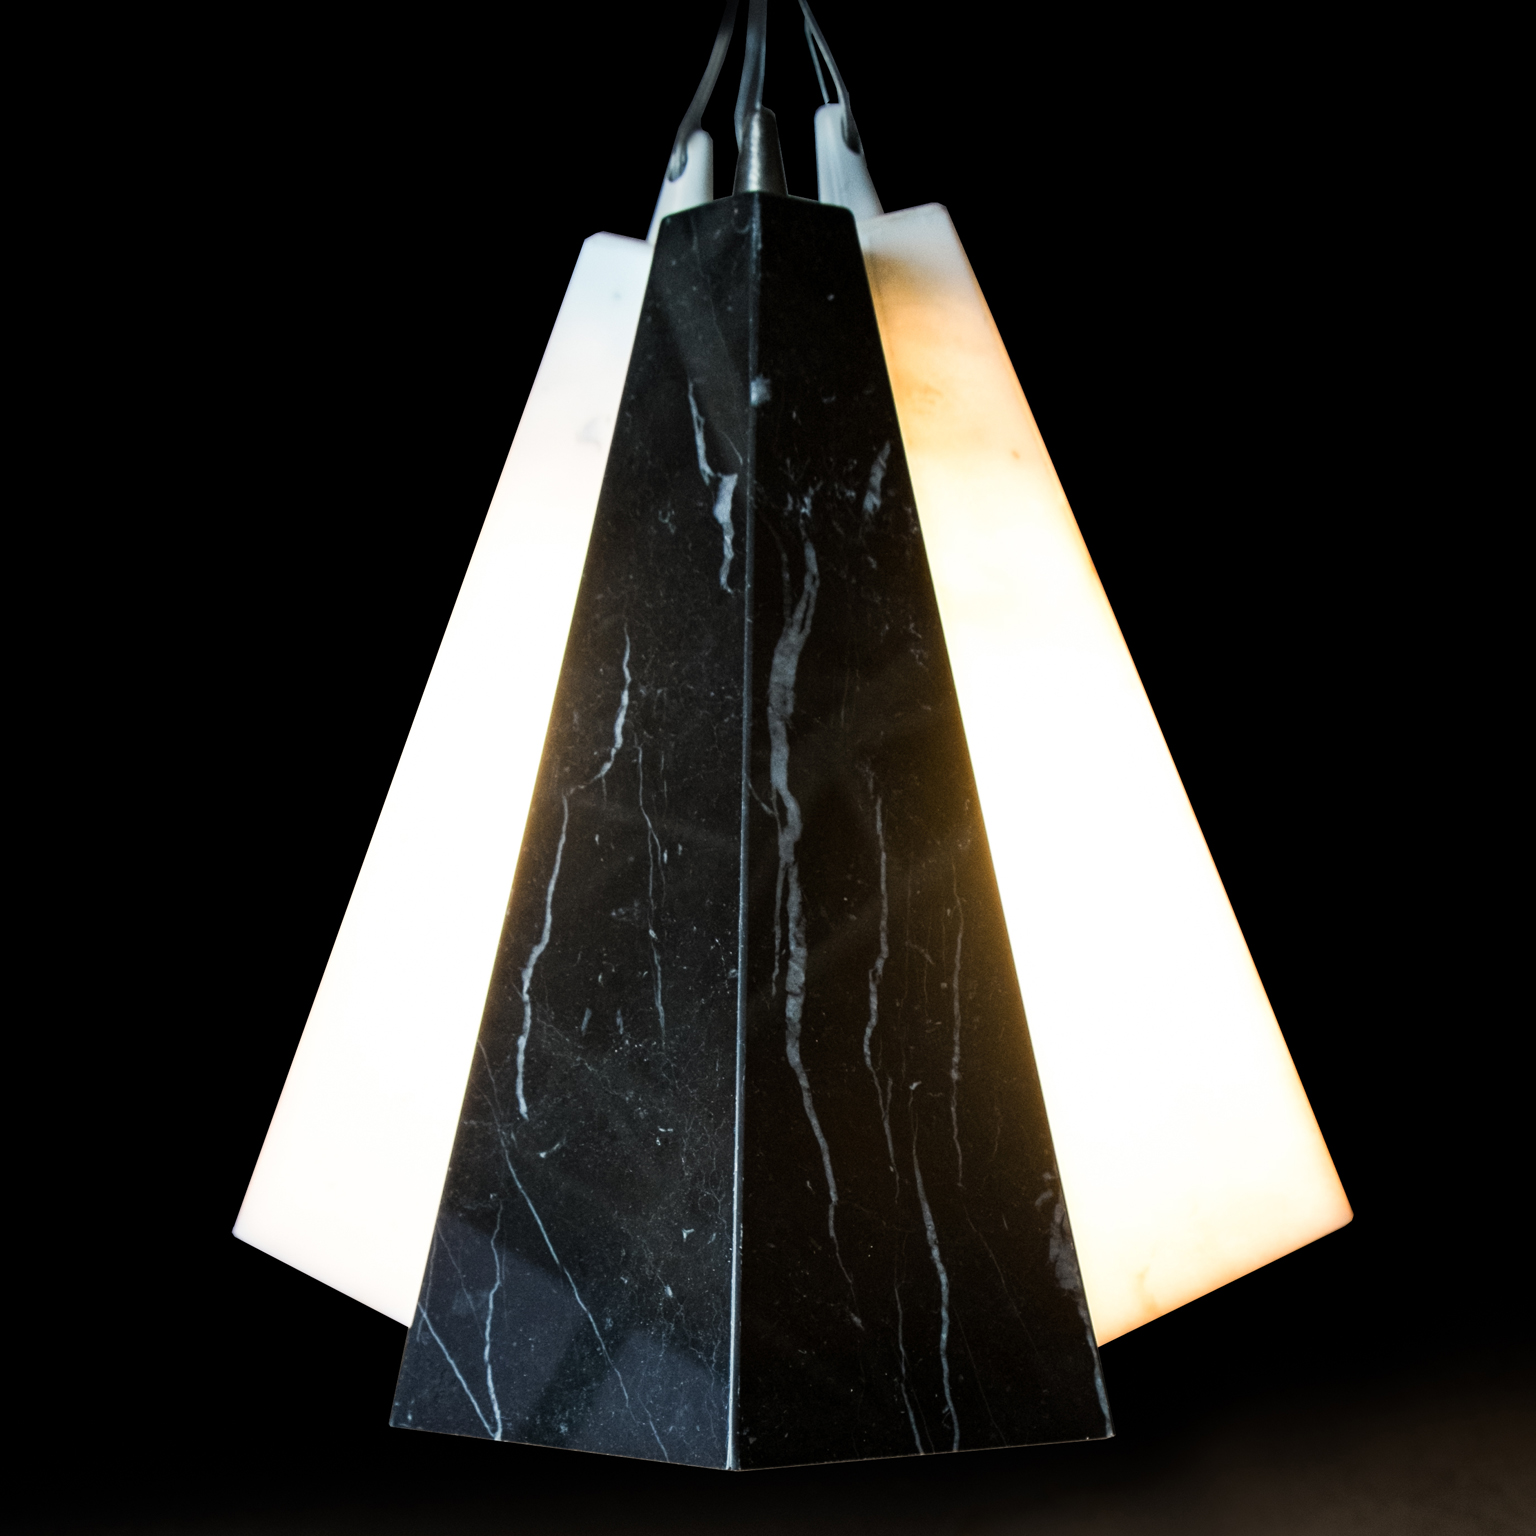 Marble Cone Pendant Light - The Marble Cone Pendant Light is a light handmade in Italy with three different types of marble. It can be used as a single element, or by adding more units it can create a modular structure that can evolve and blossom.